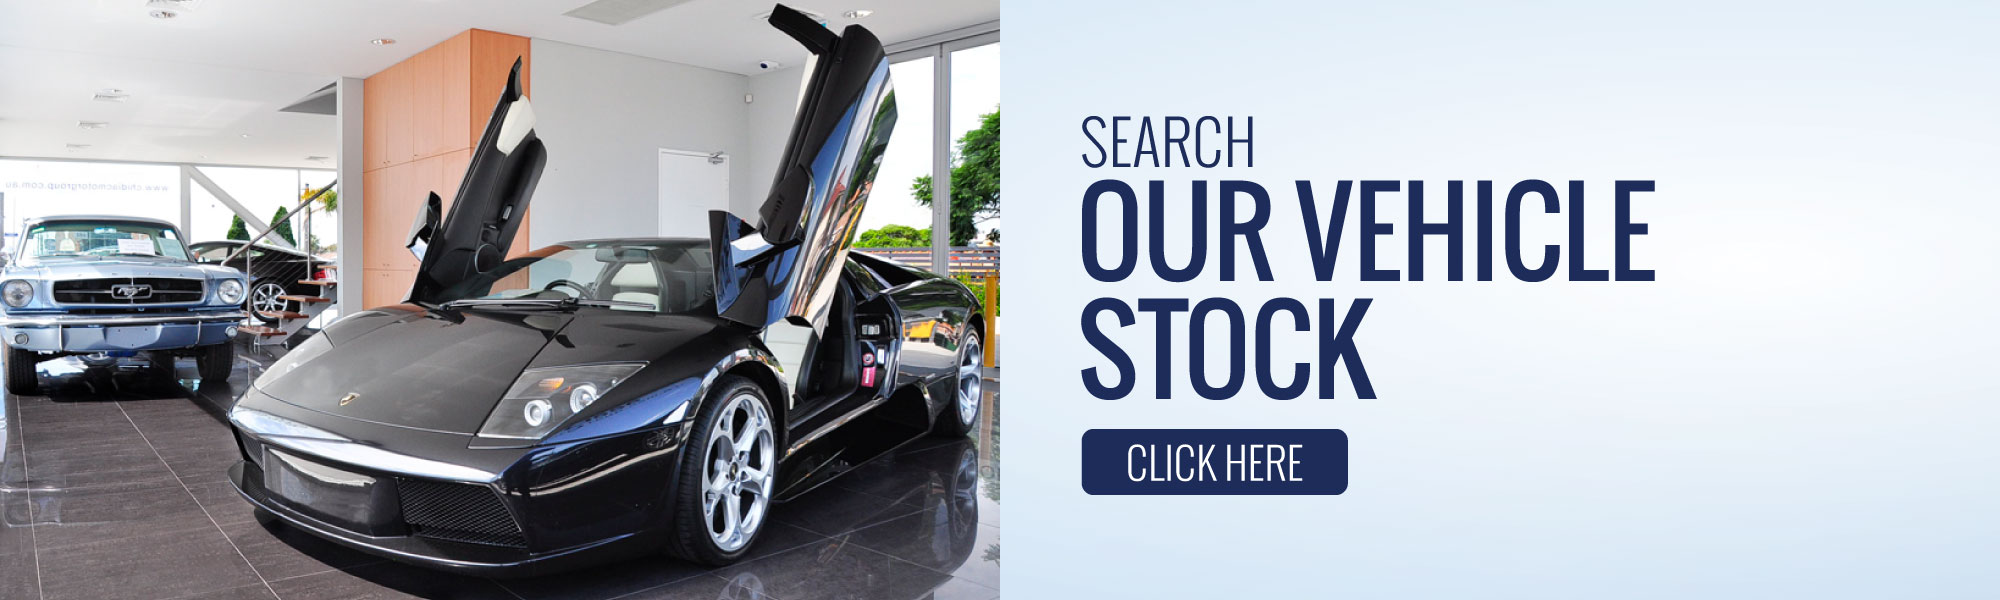 Search Our Vehicle Stock